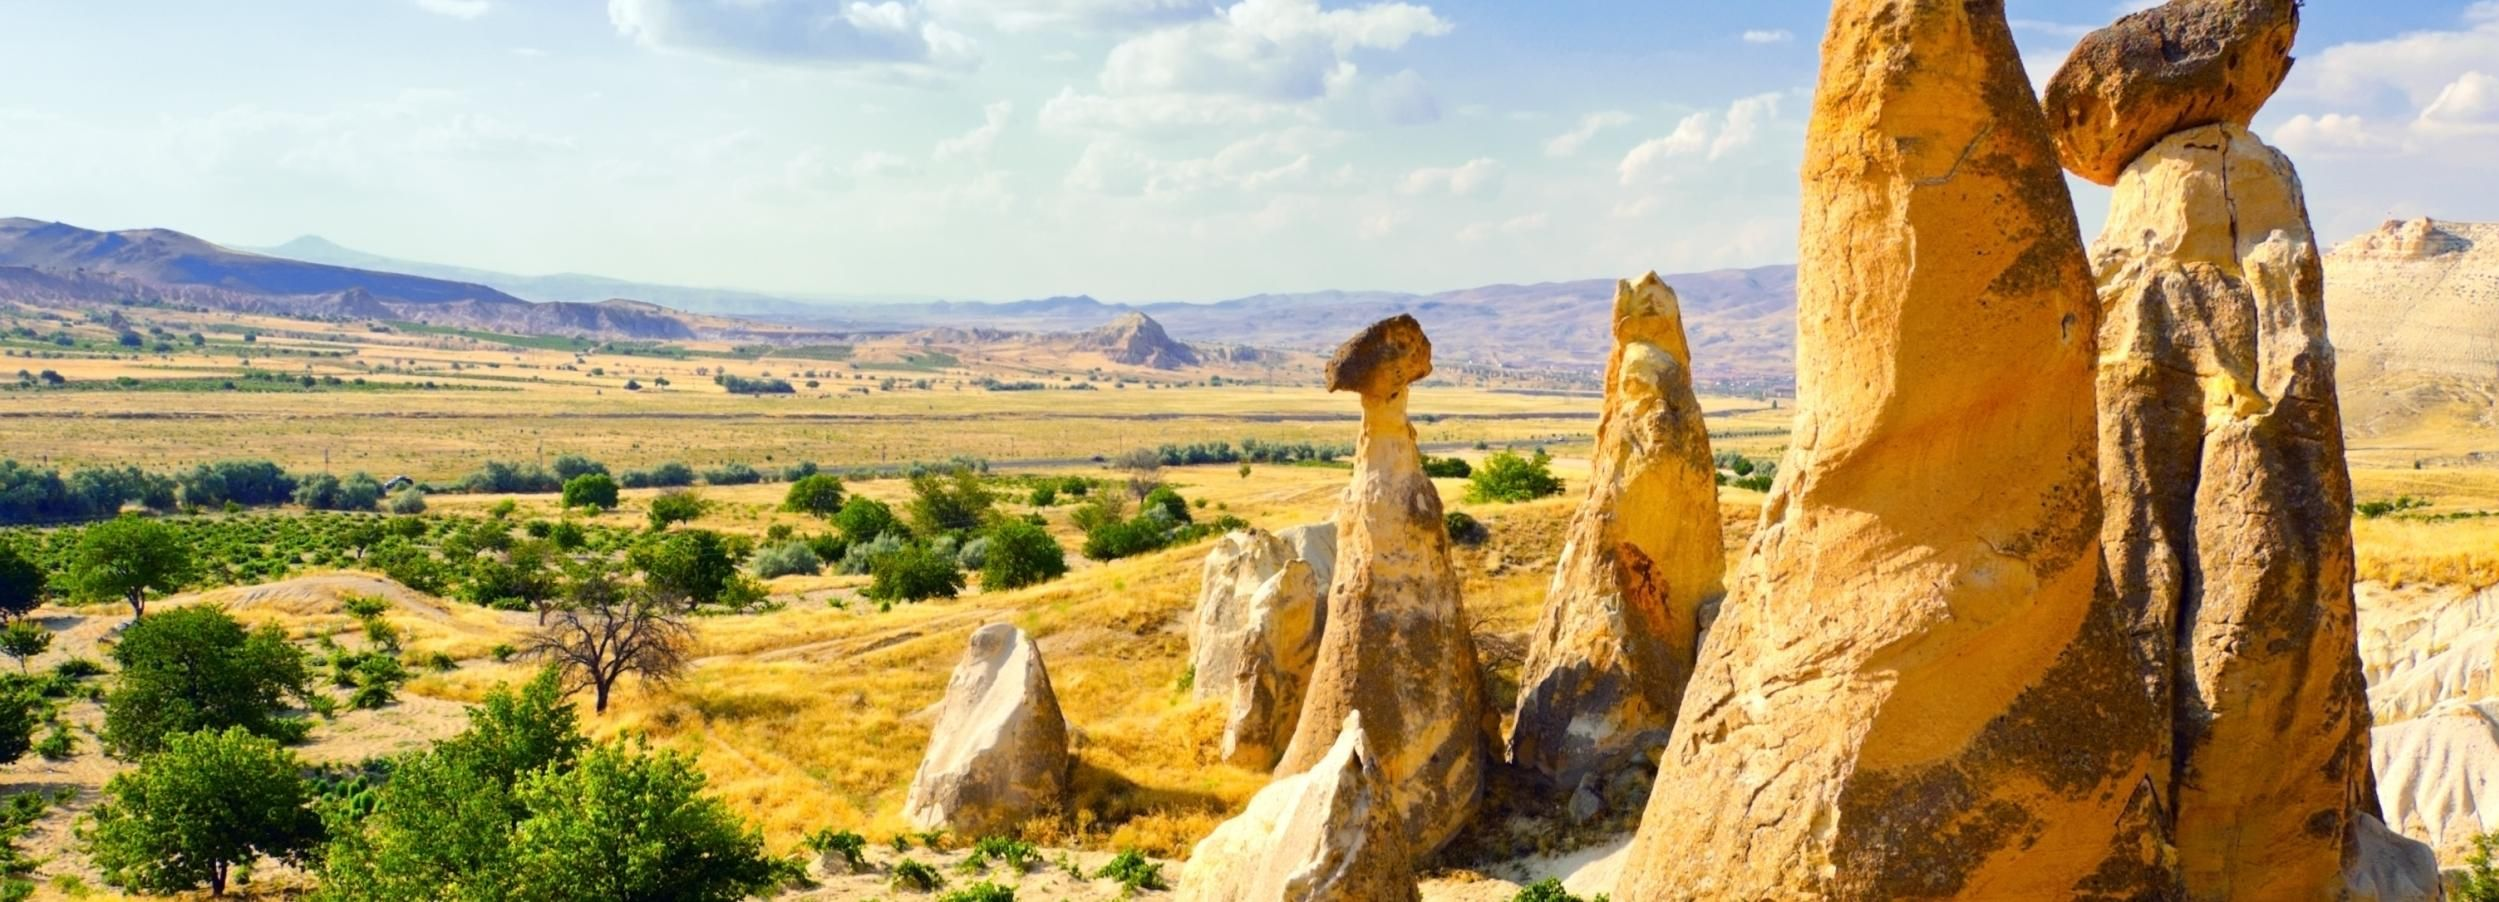 Cappadocia: Guided Highlights Tour with Lunch